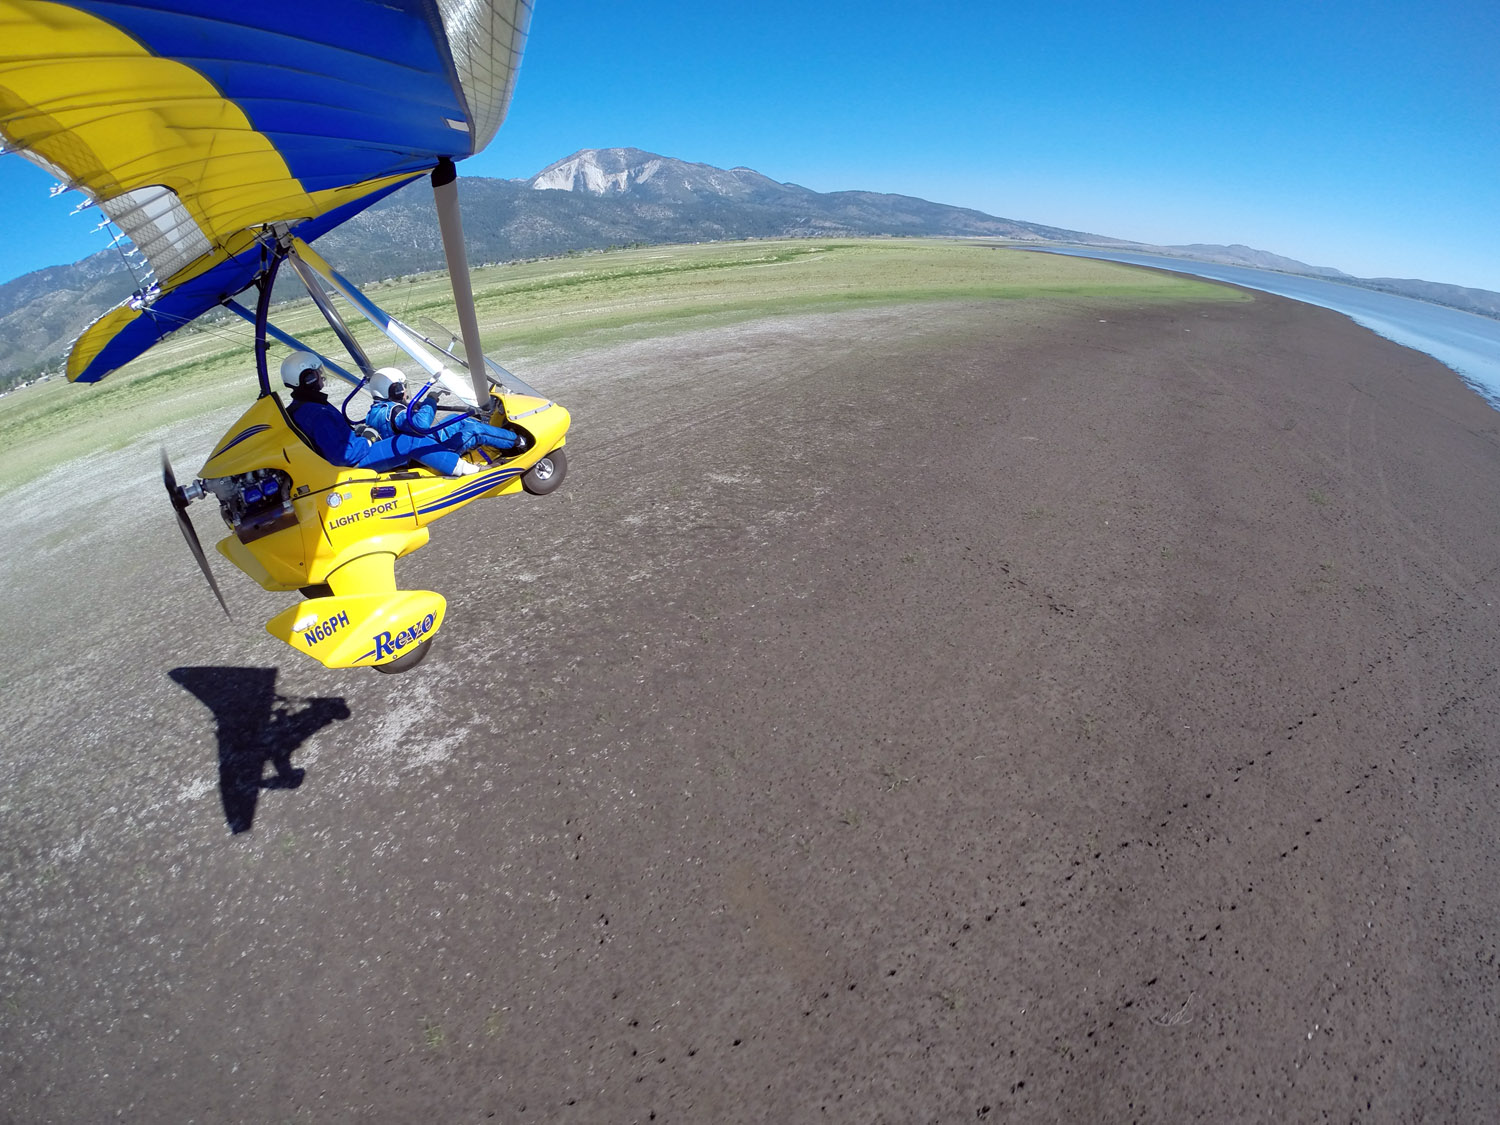 Flying Low Along Washoe Lake with Mt. Rose in background.